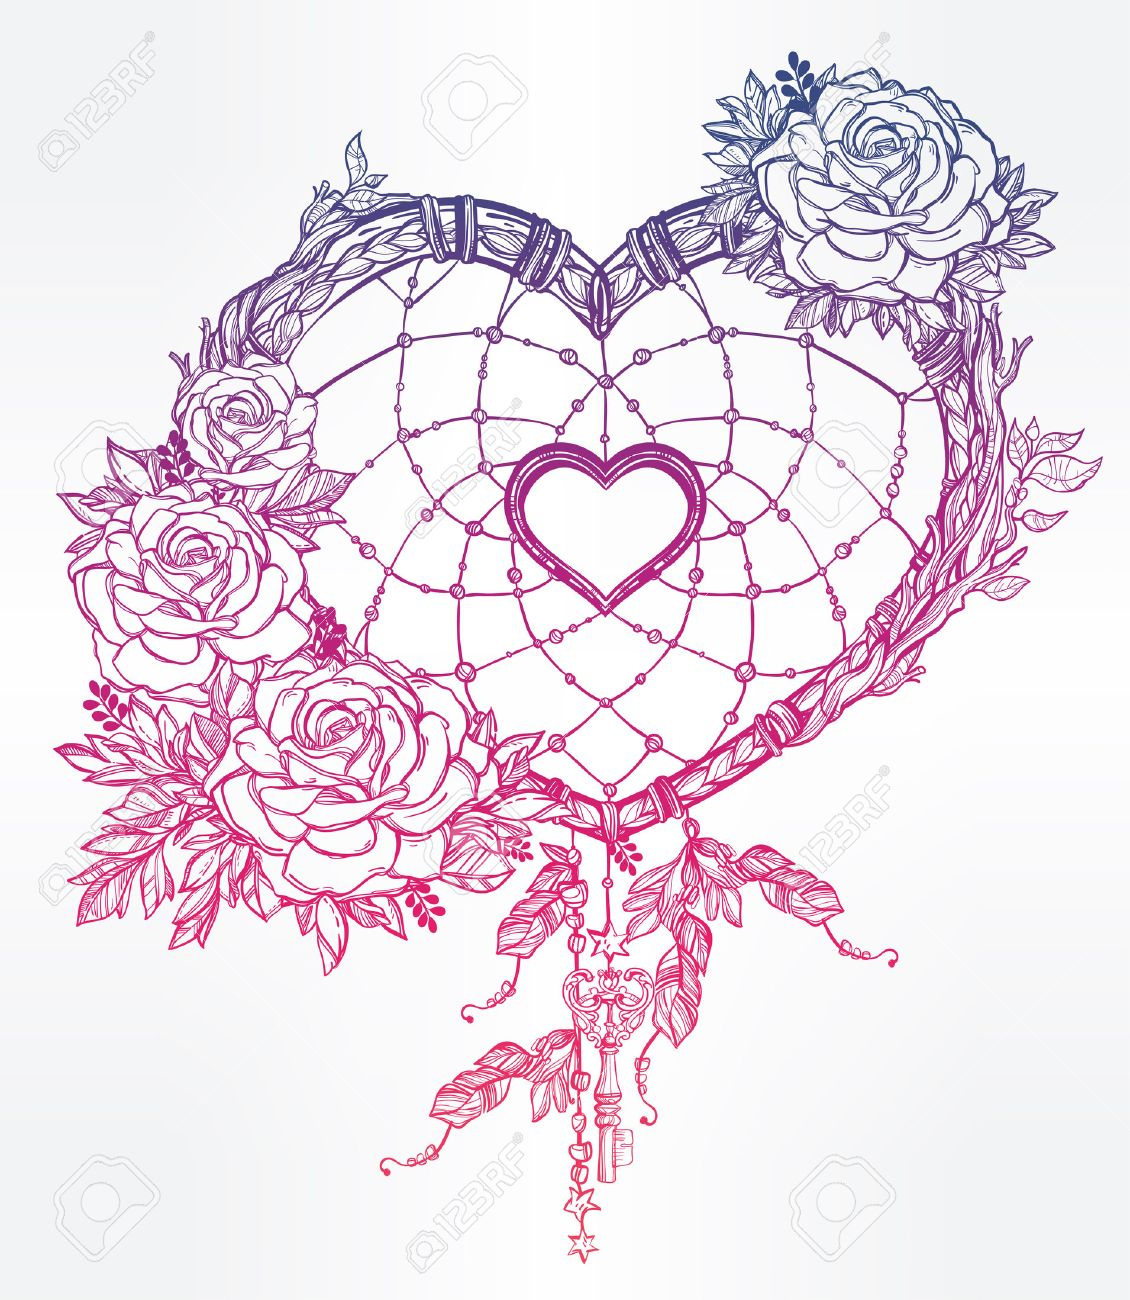 1130x1300 Hand Drawn Romantic Drawing Of A Heart Shaped Dream Catcher